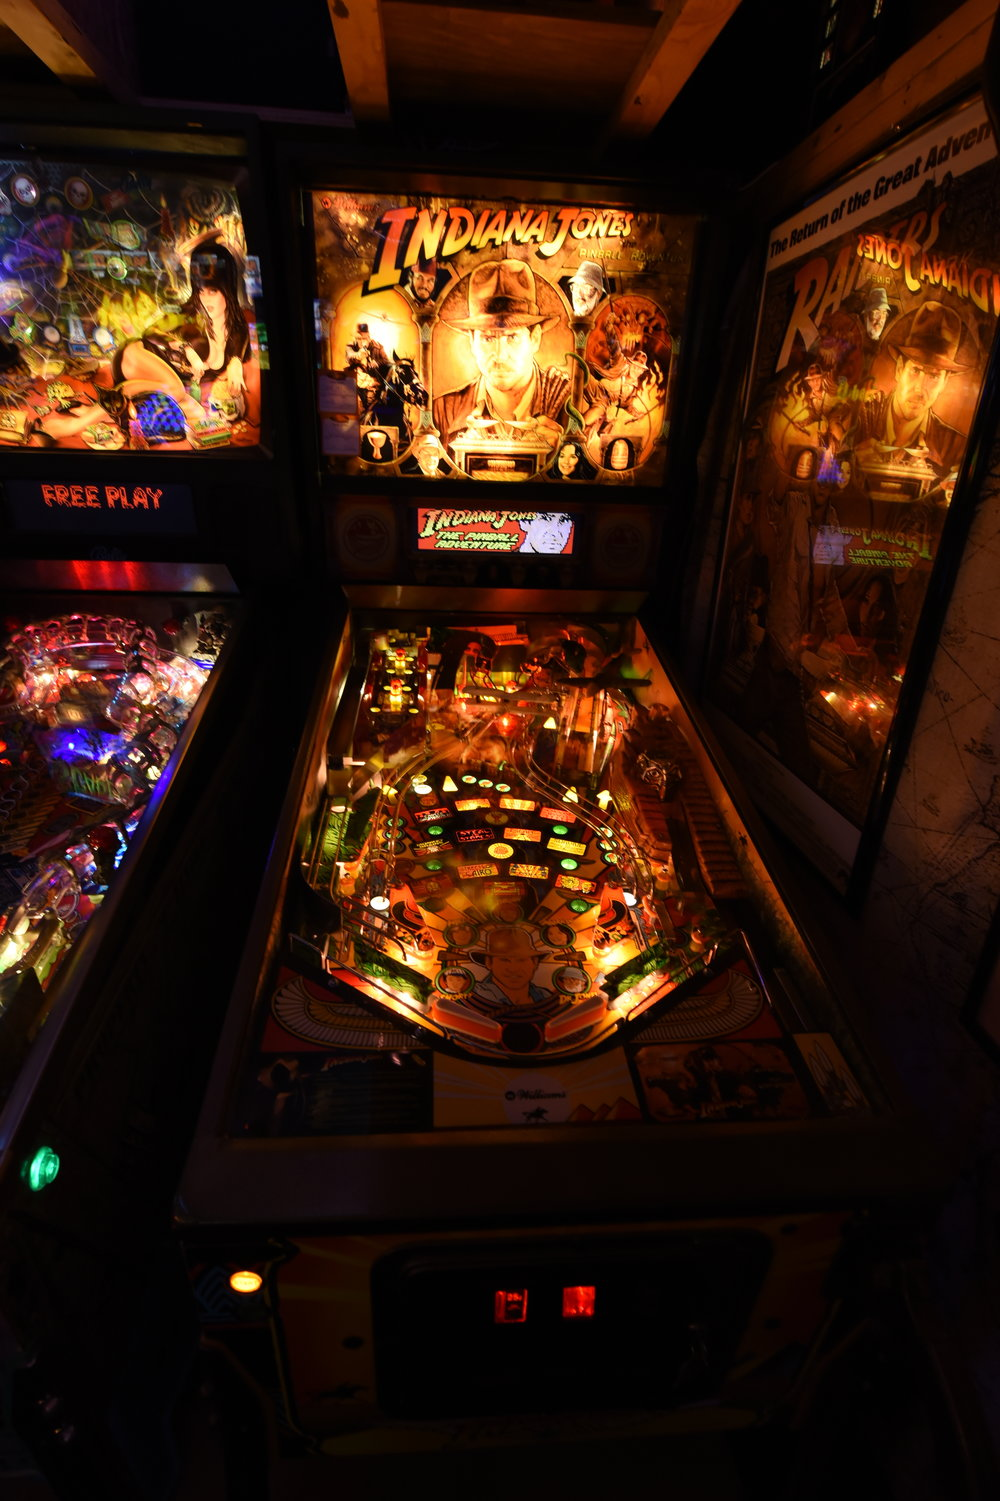 The longest lasting Pinball in my collection, Indy is still my favorite pinball. An upgraded player's quality game, it has custom golden-vein, relic-inspired powder-coated metals. It is running a customized Pinsound orchestration to bring John Williams iconic sound to the gameplay experience but still nods to the original mix quite well. The playfield is pretty good and the plastics look great. It has OCD LED on the controlled lamps and I recently went back to incandescents in the GI, trying to add the warm-fire-glow back to the game. The side art has alot of fade and a few gashes. Instead of cabinet decal, I'd like to find a mural artist to brighten the colors back but keep the original elements in-tact.